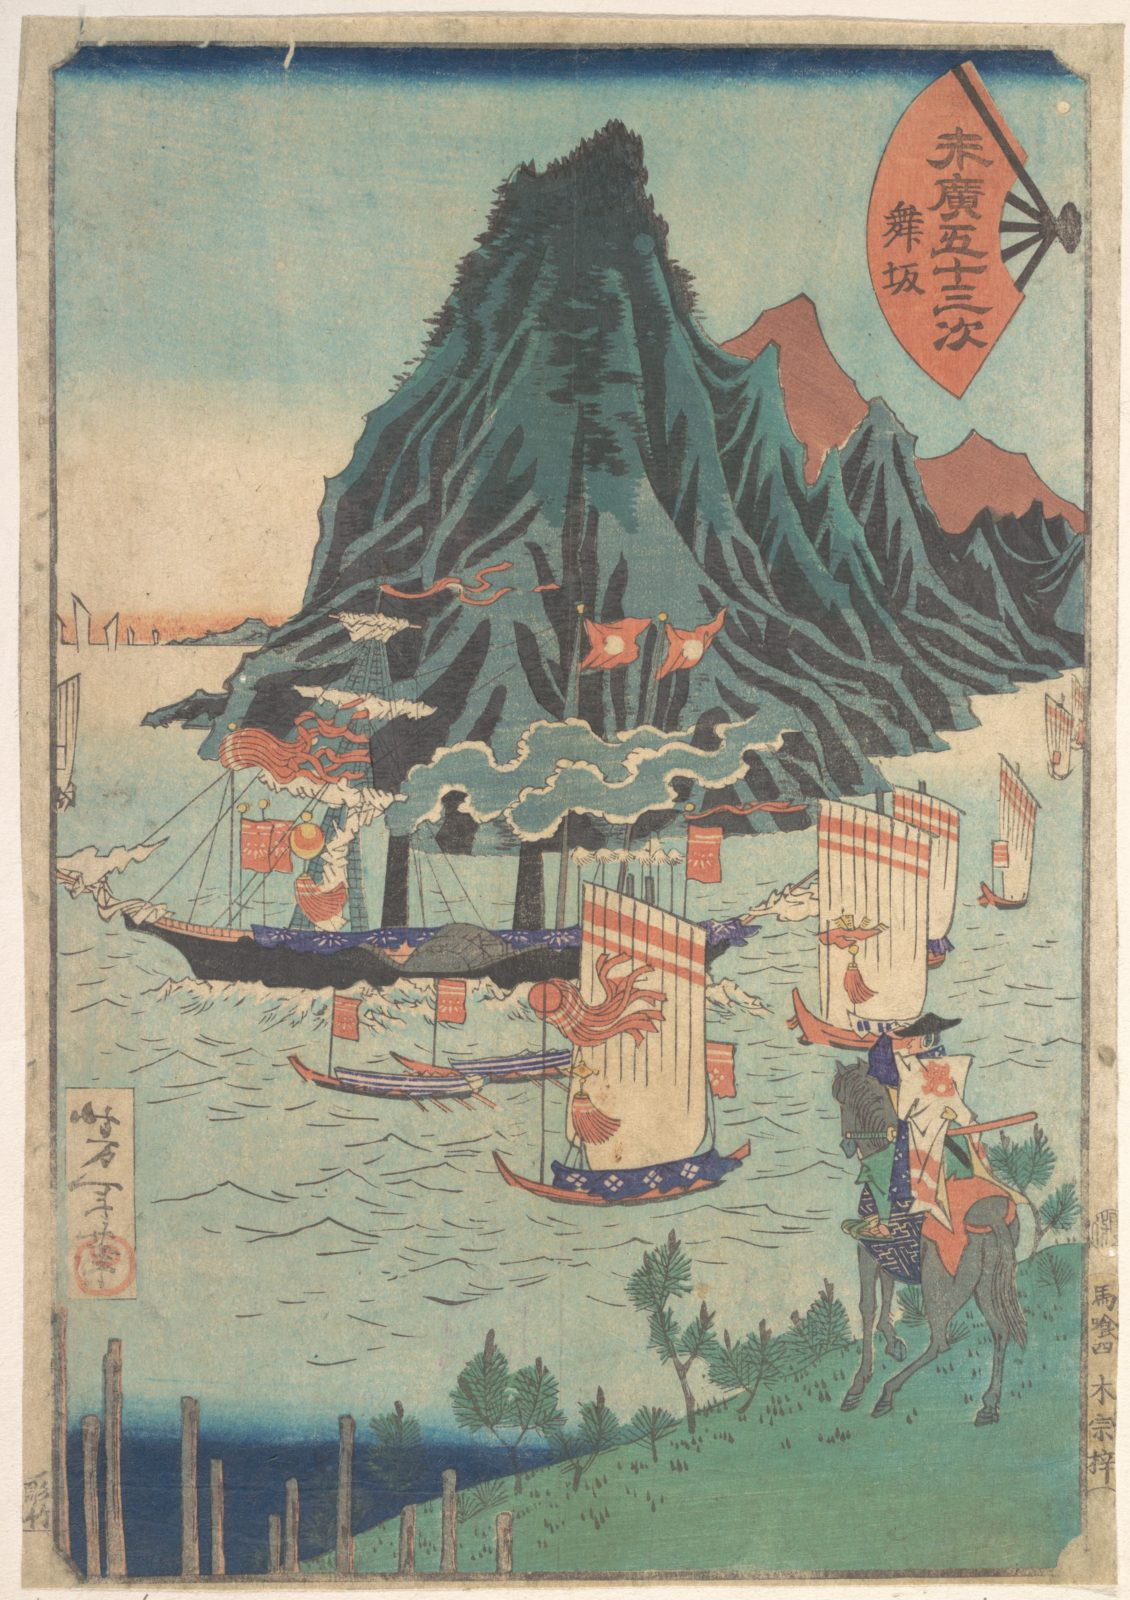 Fifty-three Stations of Suehiro: Warrior Looks at Passing Steamship